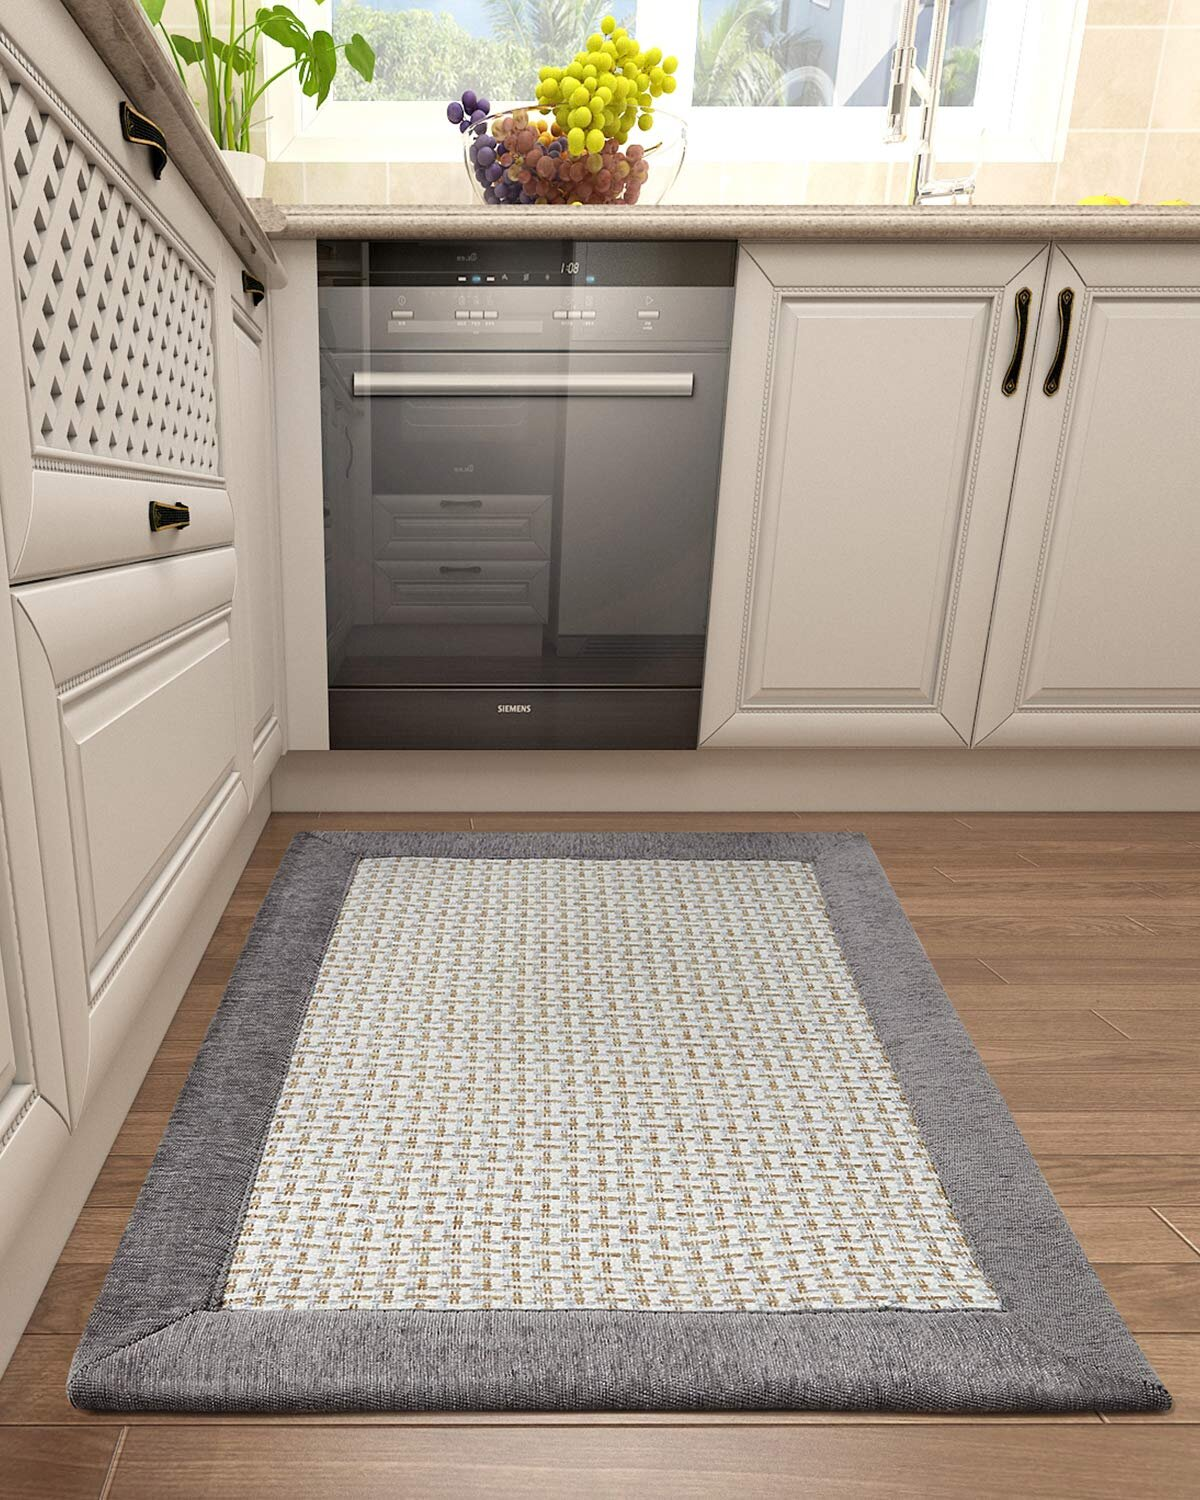 Gracie Oaks Kitchen Floor Mats For In Front Of Sink Kitchen Rugs And Mats Non Skid Twill Kitchen Mat Standing Mat Washable Wayfair